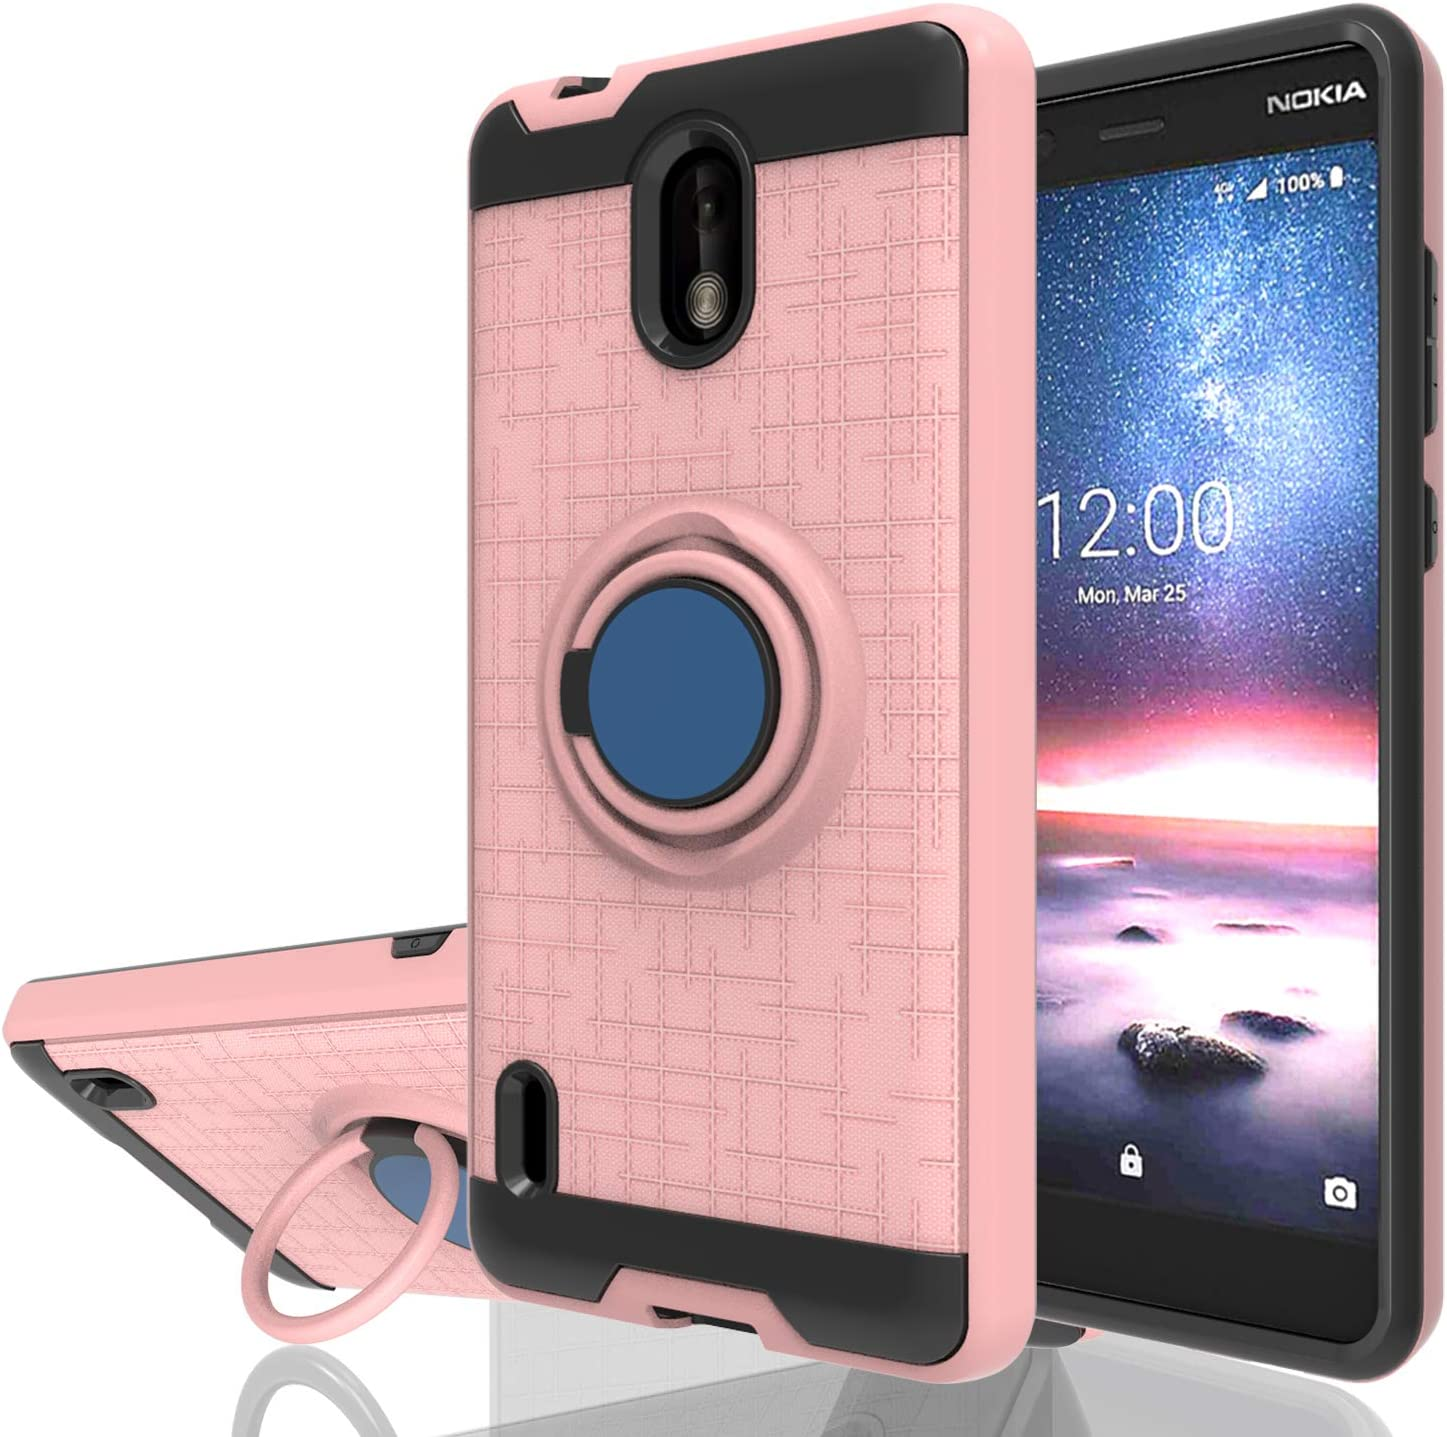 Wtiaw Nokia 3.1C Case,Nokia 3.1A Case,Nokia 3.1 C Phone Cases,Nokia 3.1 A Phone Cases,360 Degree Rotating Ring Kickstand [TPU+PC Material] Hybrid Dual Layer Defender Case for N0KIA 3.1C-CH Rose Gold